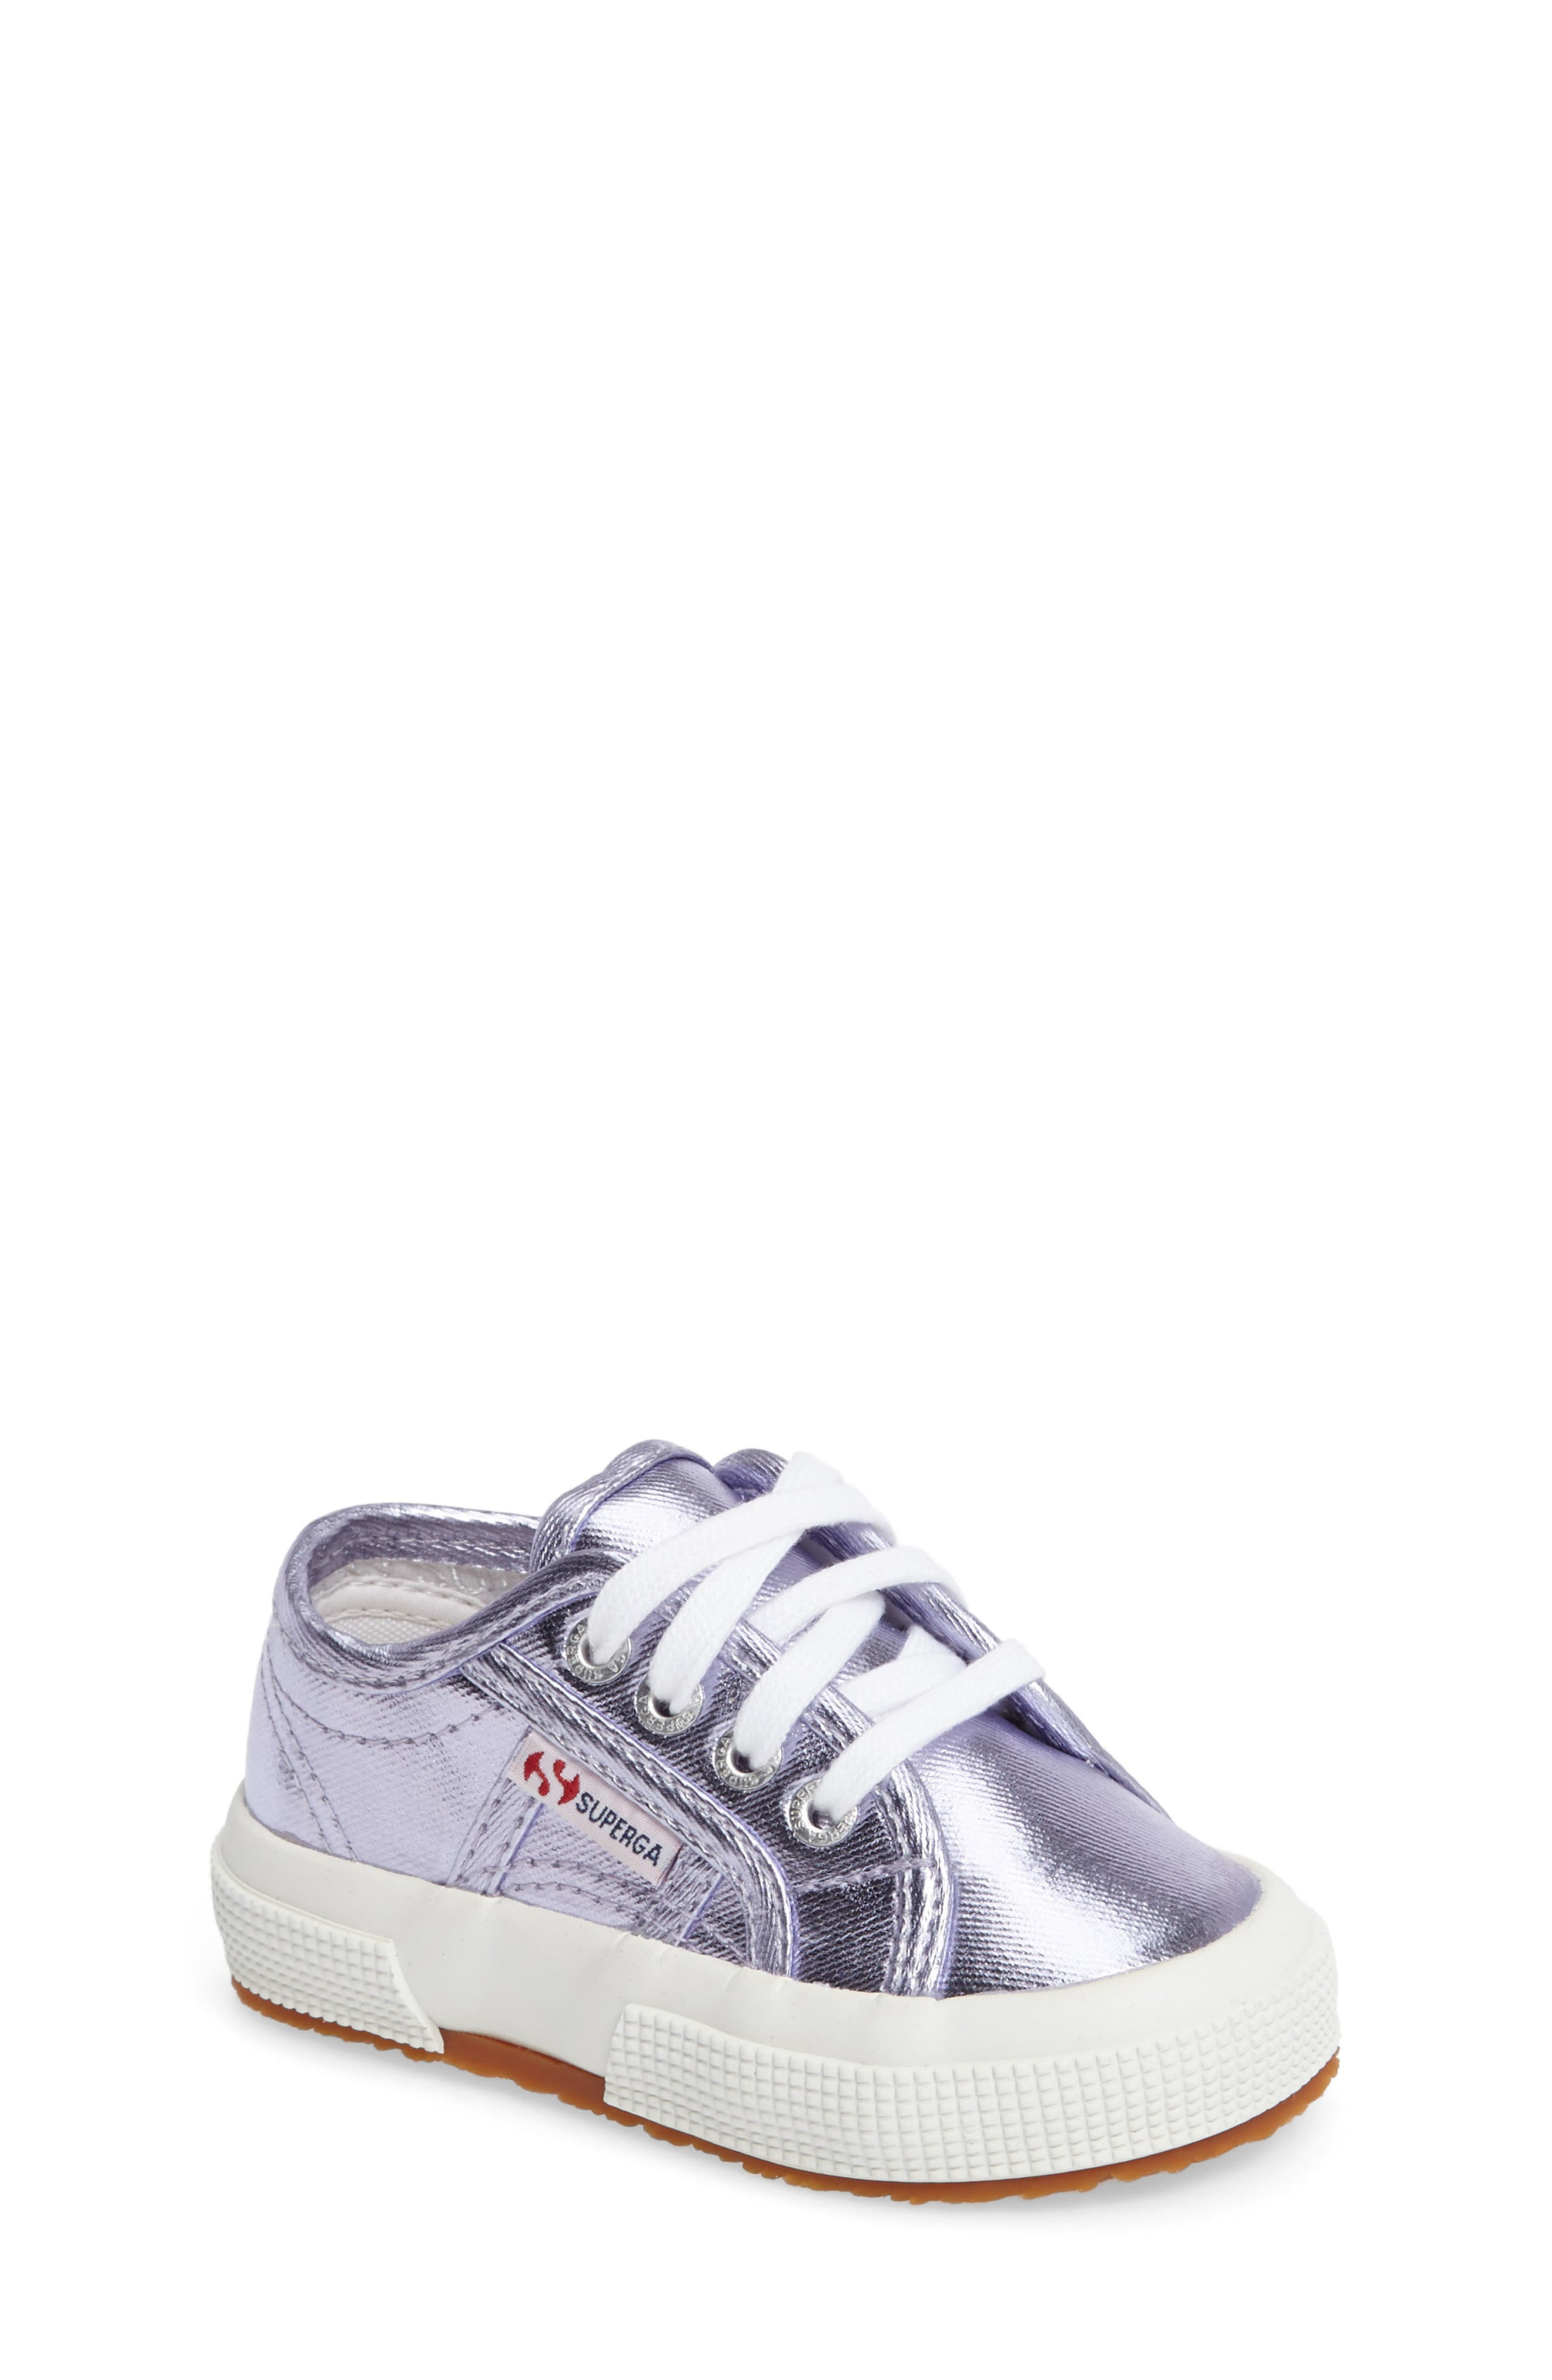 Superga Metallic Sneaker (Walker, Toddler & Little Kid)